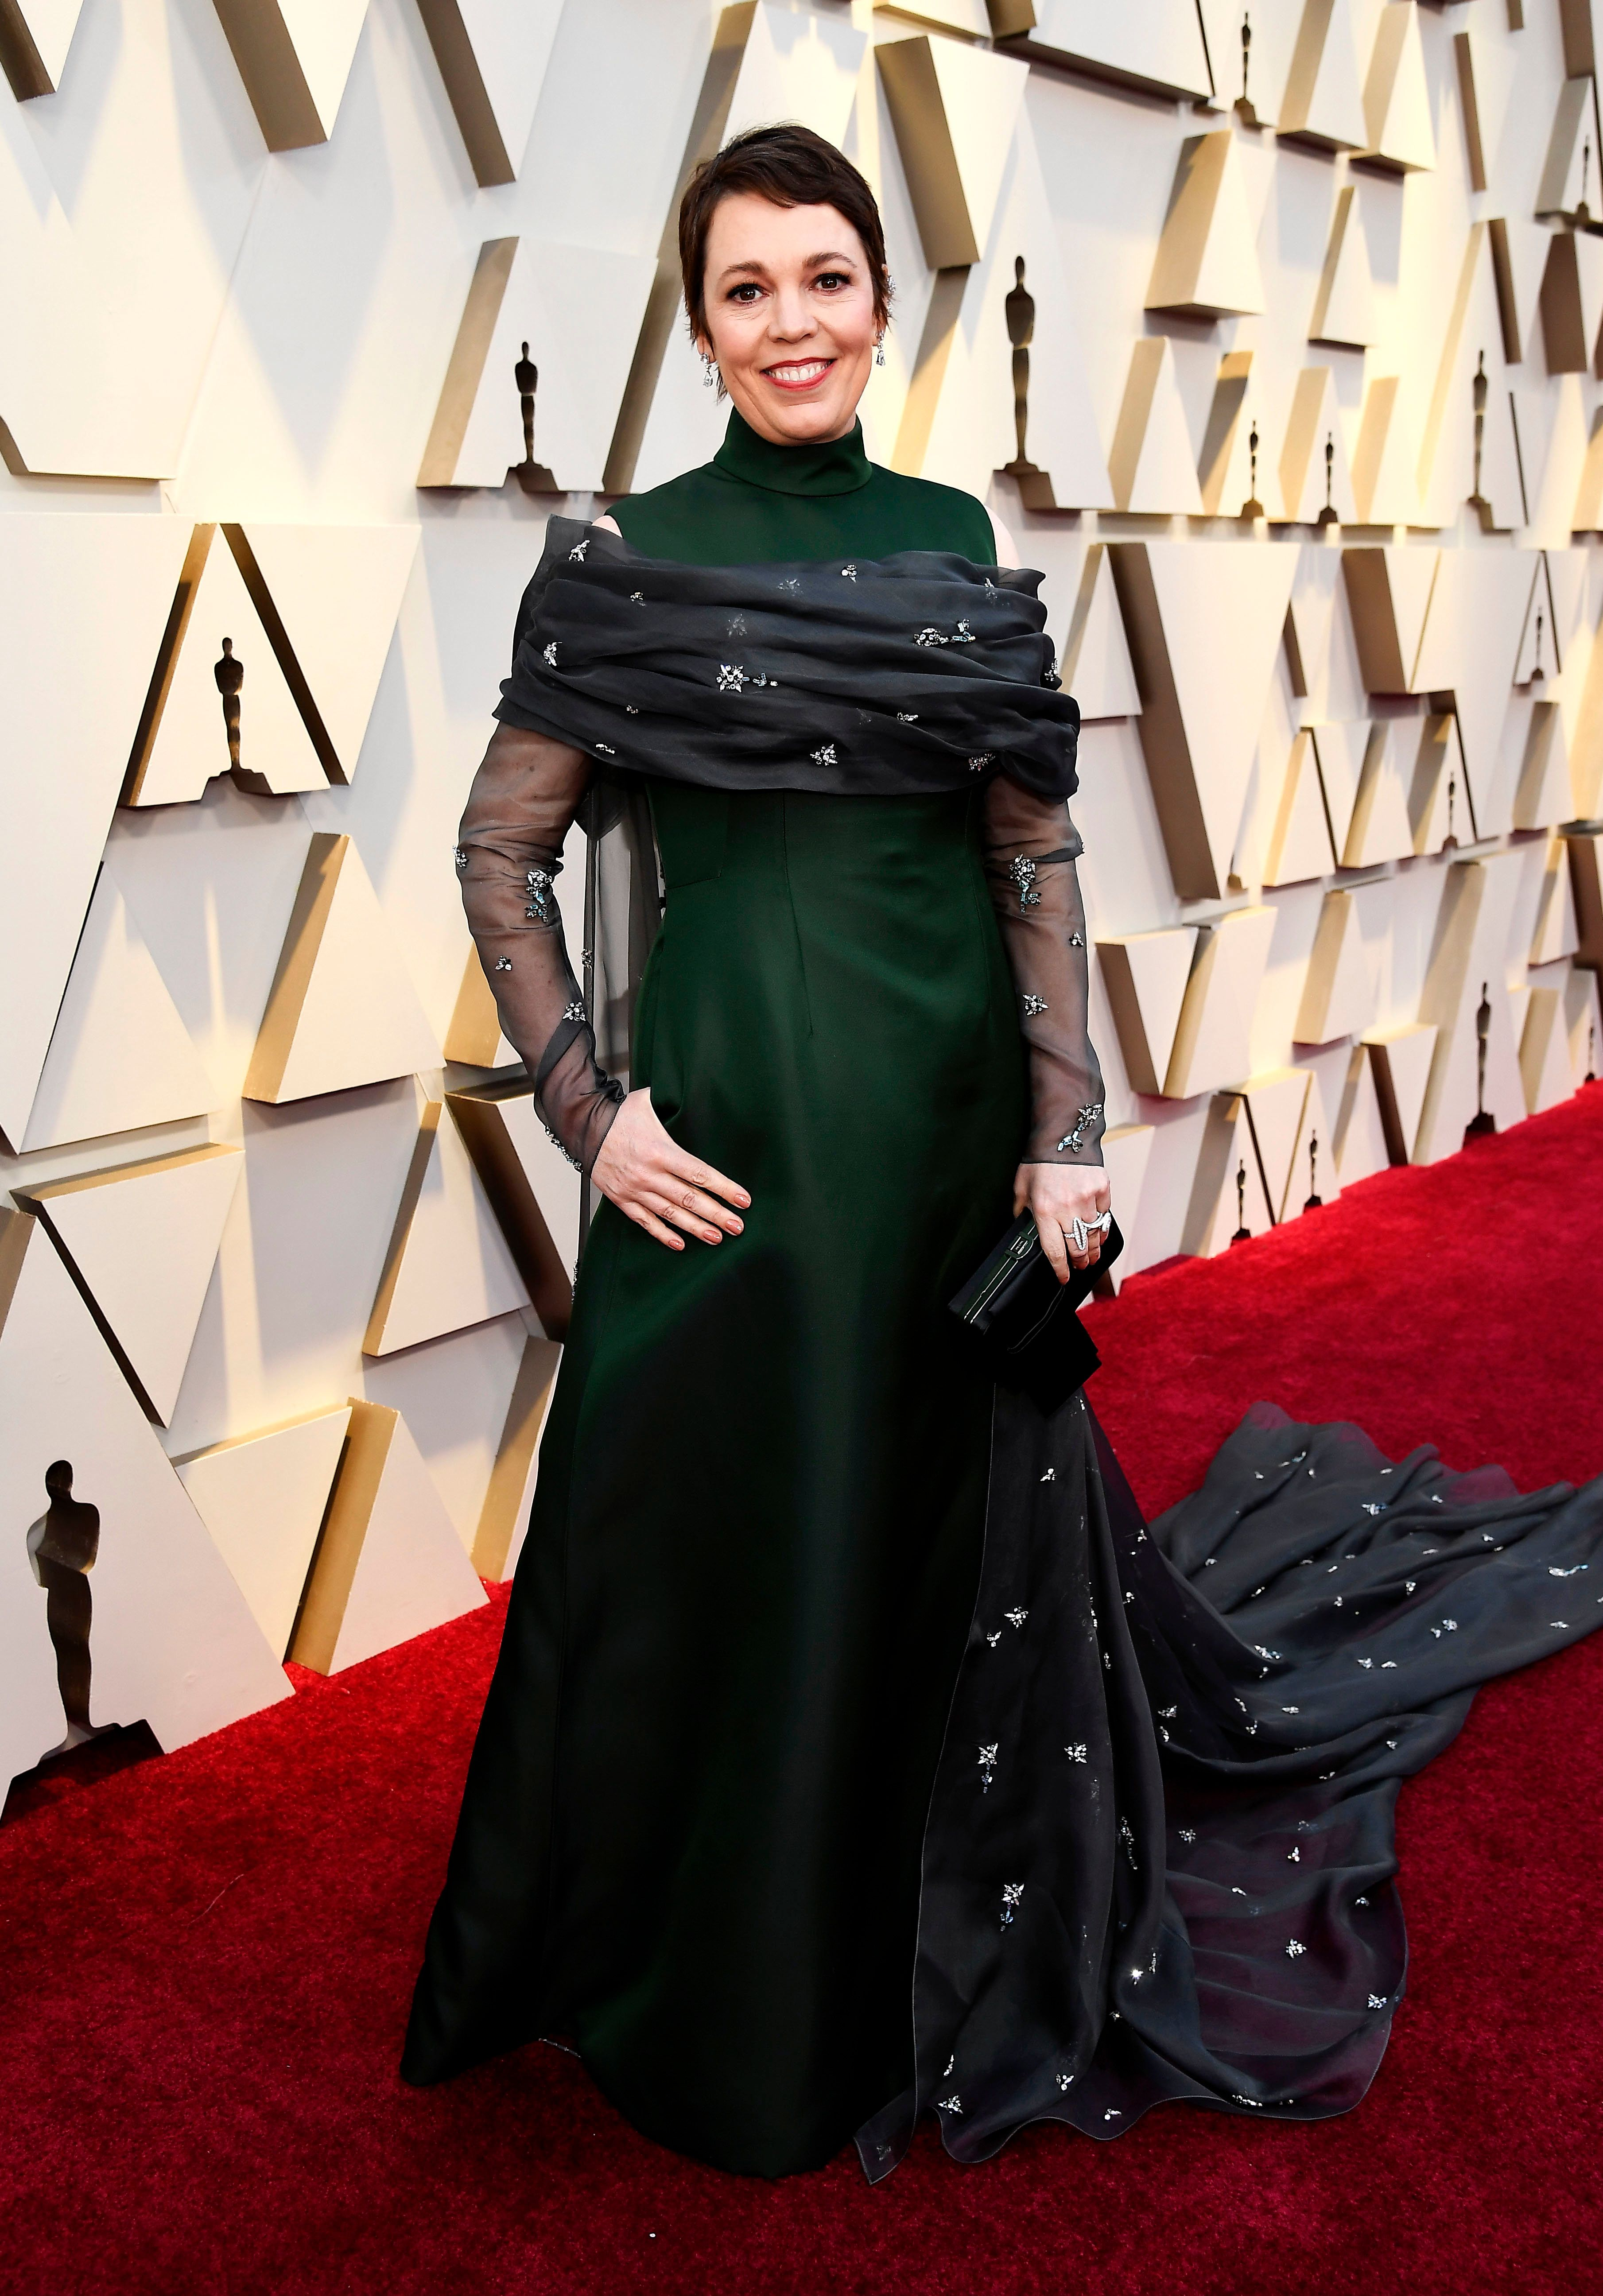 HOLLYWOOD, CALIFORNIA - FEBRUARY 24: Olivia Colman attends the 91st Annual Academy Awards at Hollywood and Highland on February 24, 2019 in Hollywood, California. (Photo by Kevork Djansezian/Getty Images)